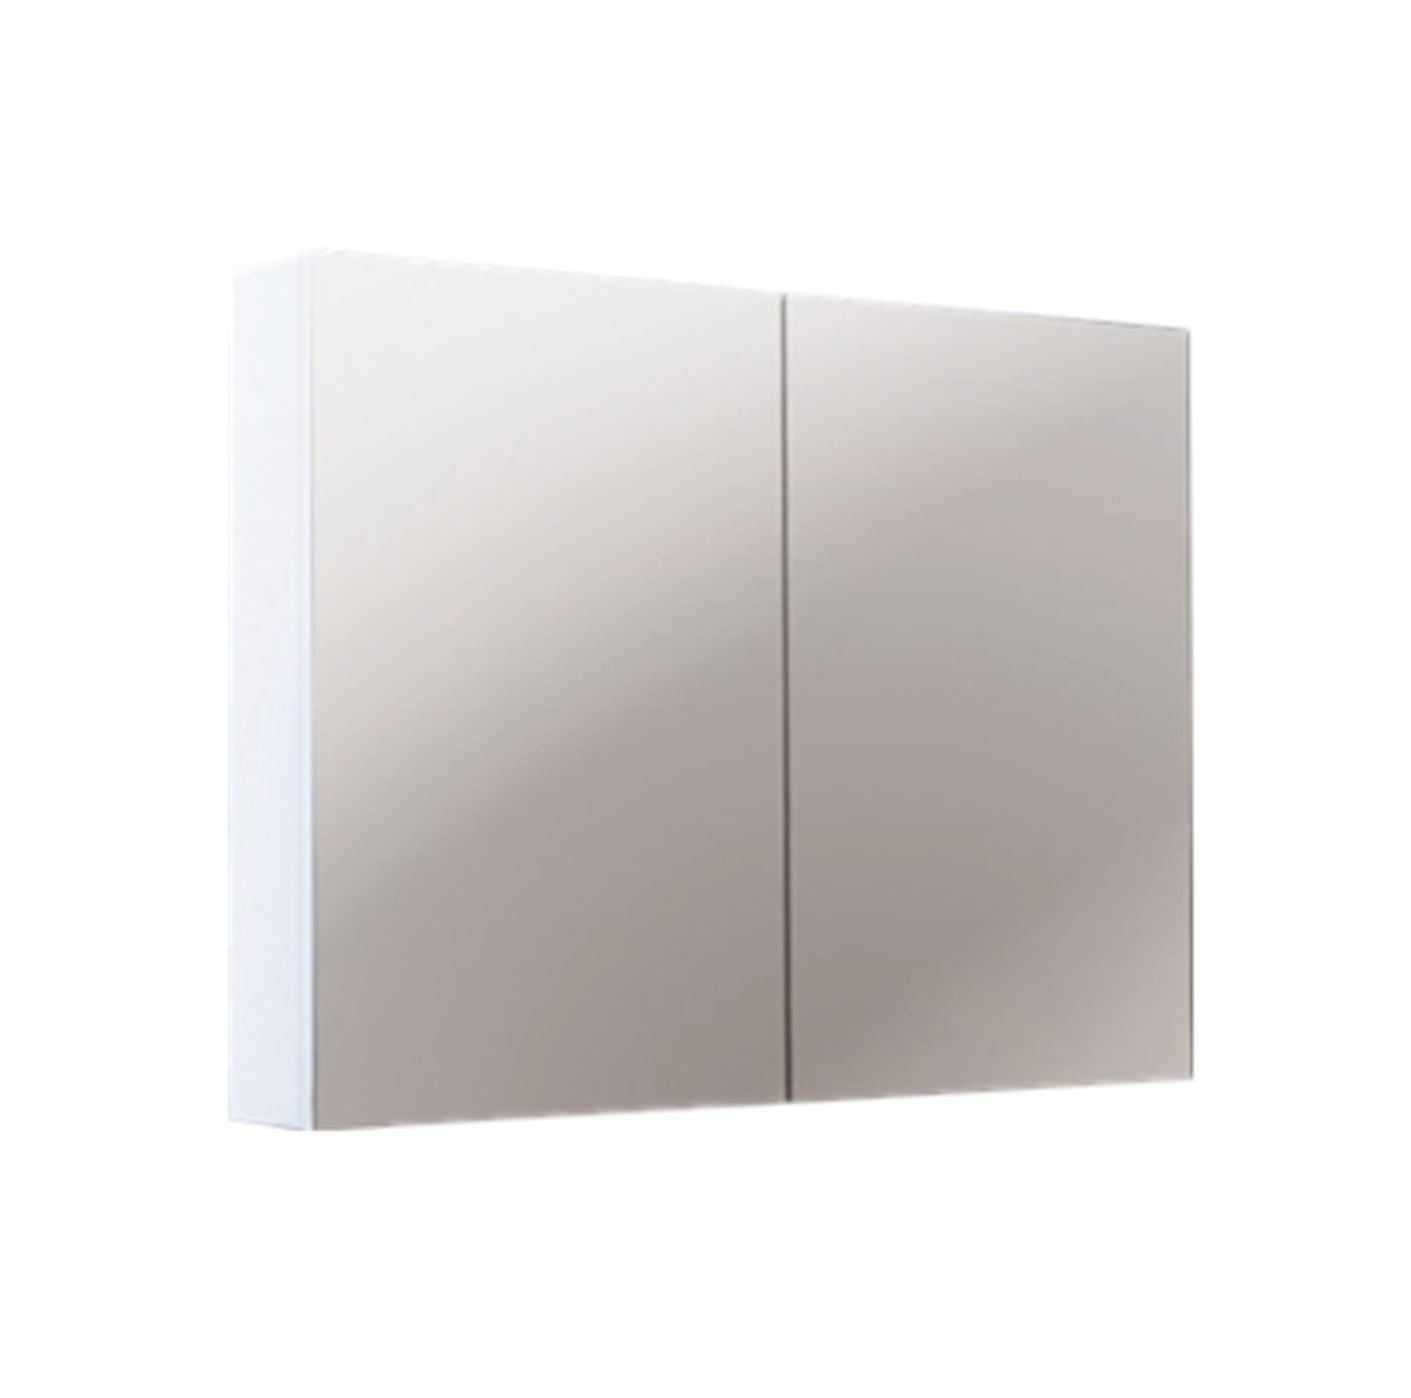 900mm PVC Shaving Cabinet with Pencil Edge (750mm height)